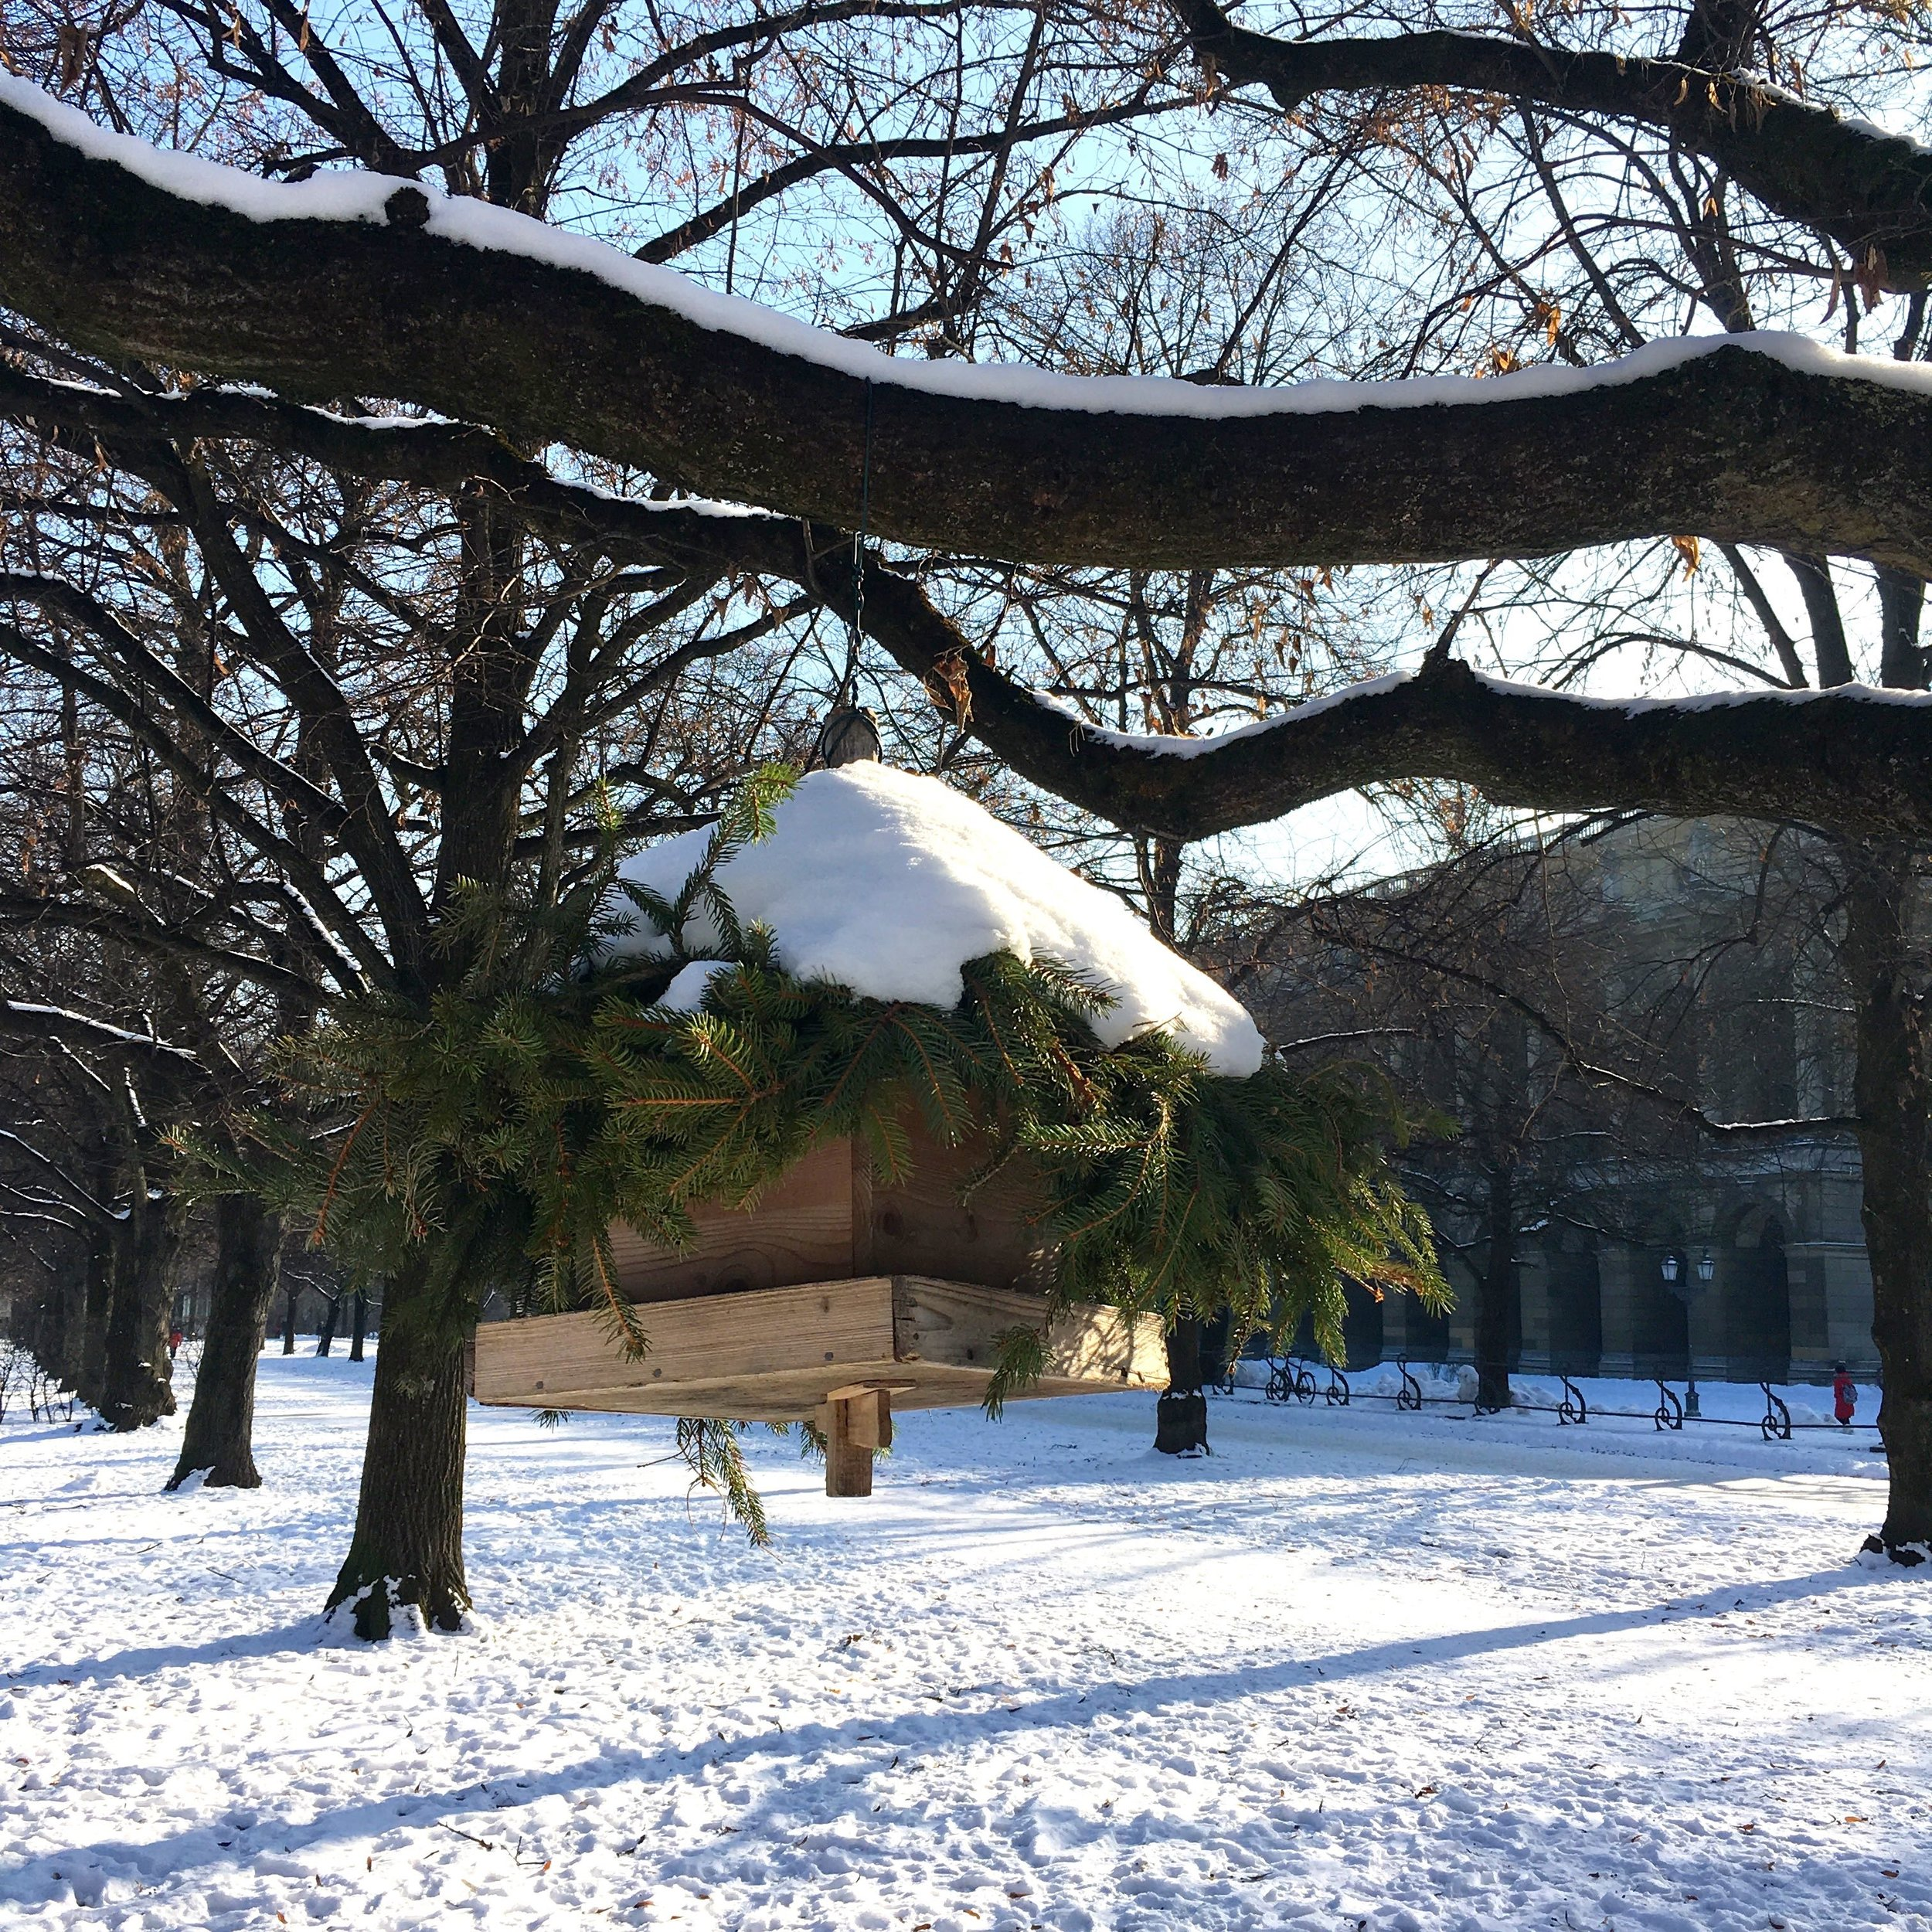 A snowy topped bird table in Munich's Hofgarten